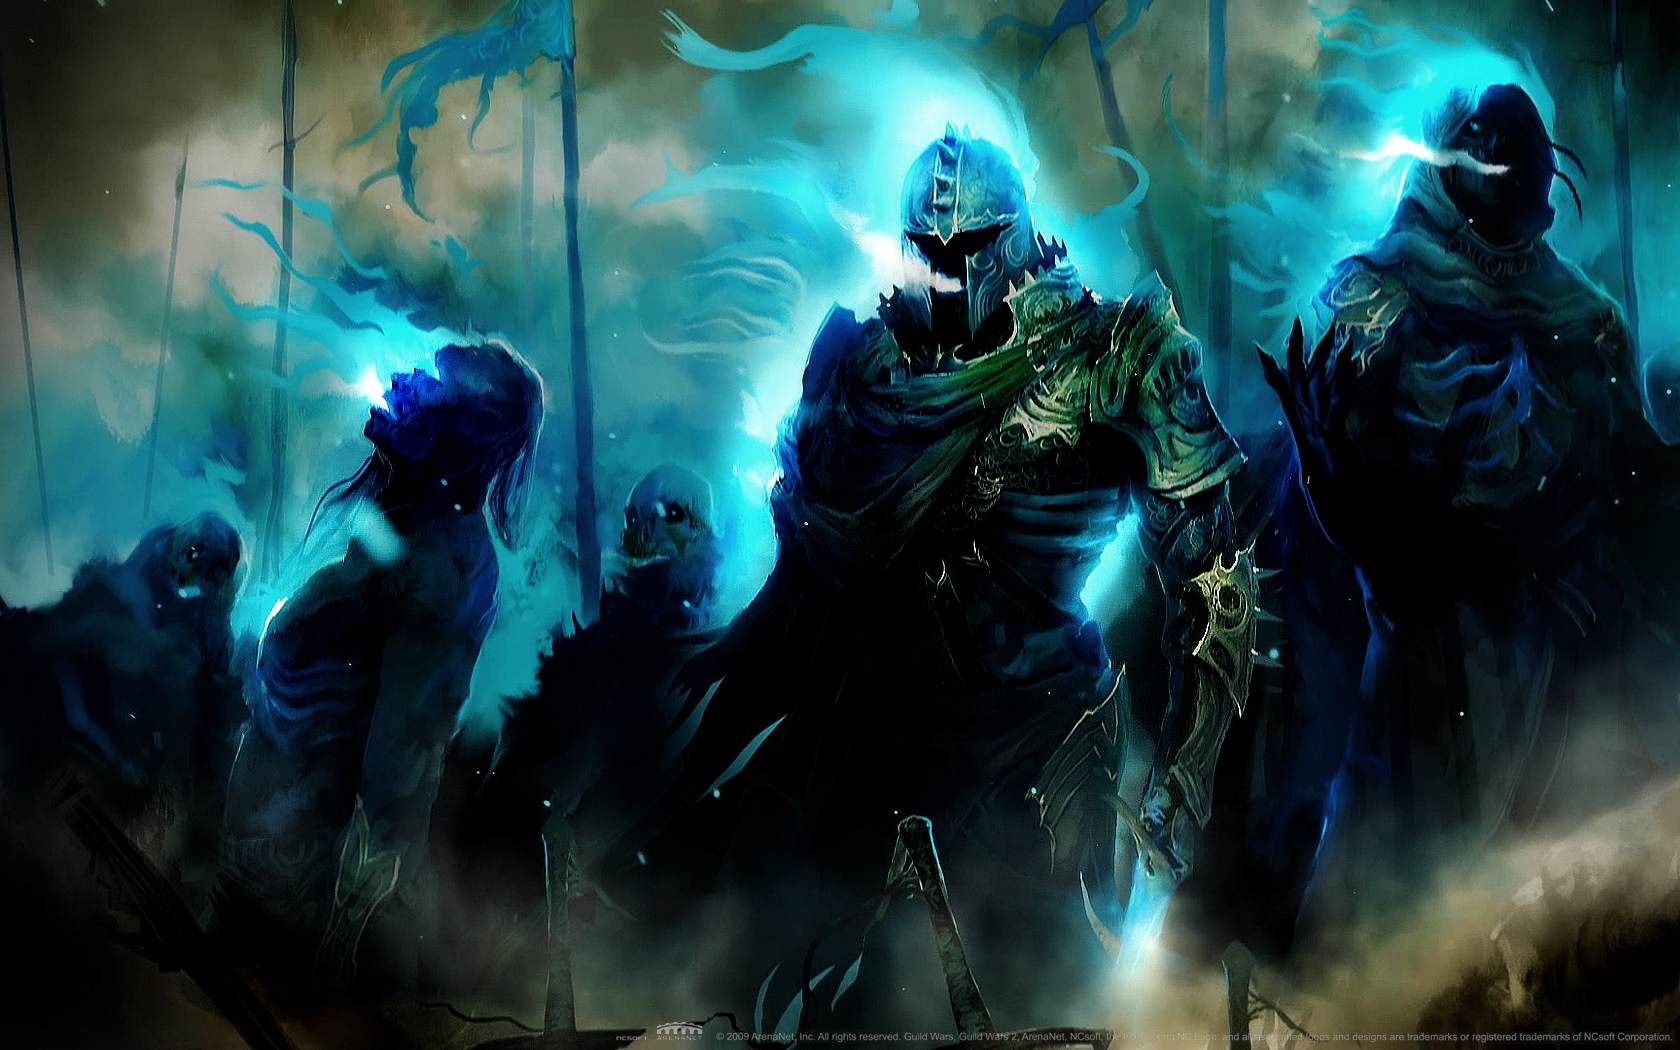 Guild Wars 2 is a fantasy MMORPG currently in development by ArenaNet 1680x1050